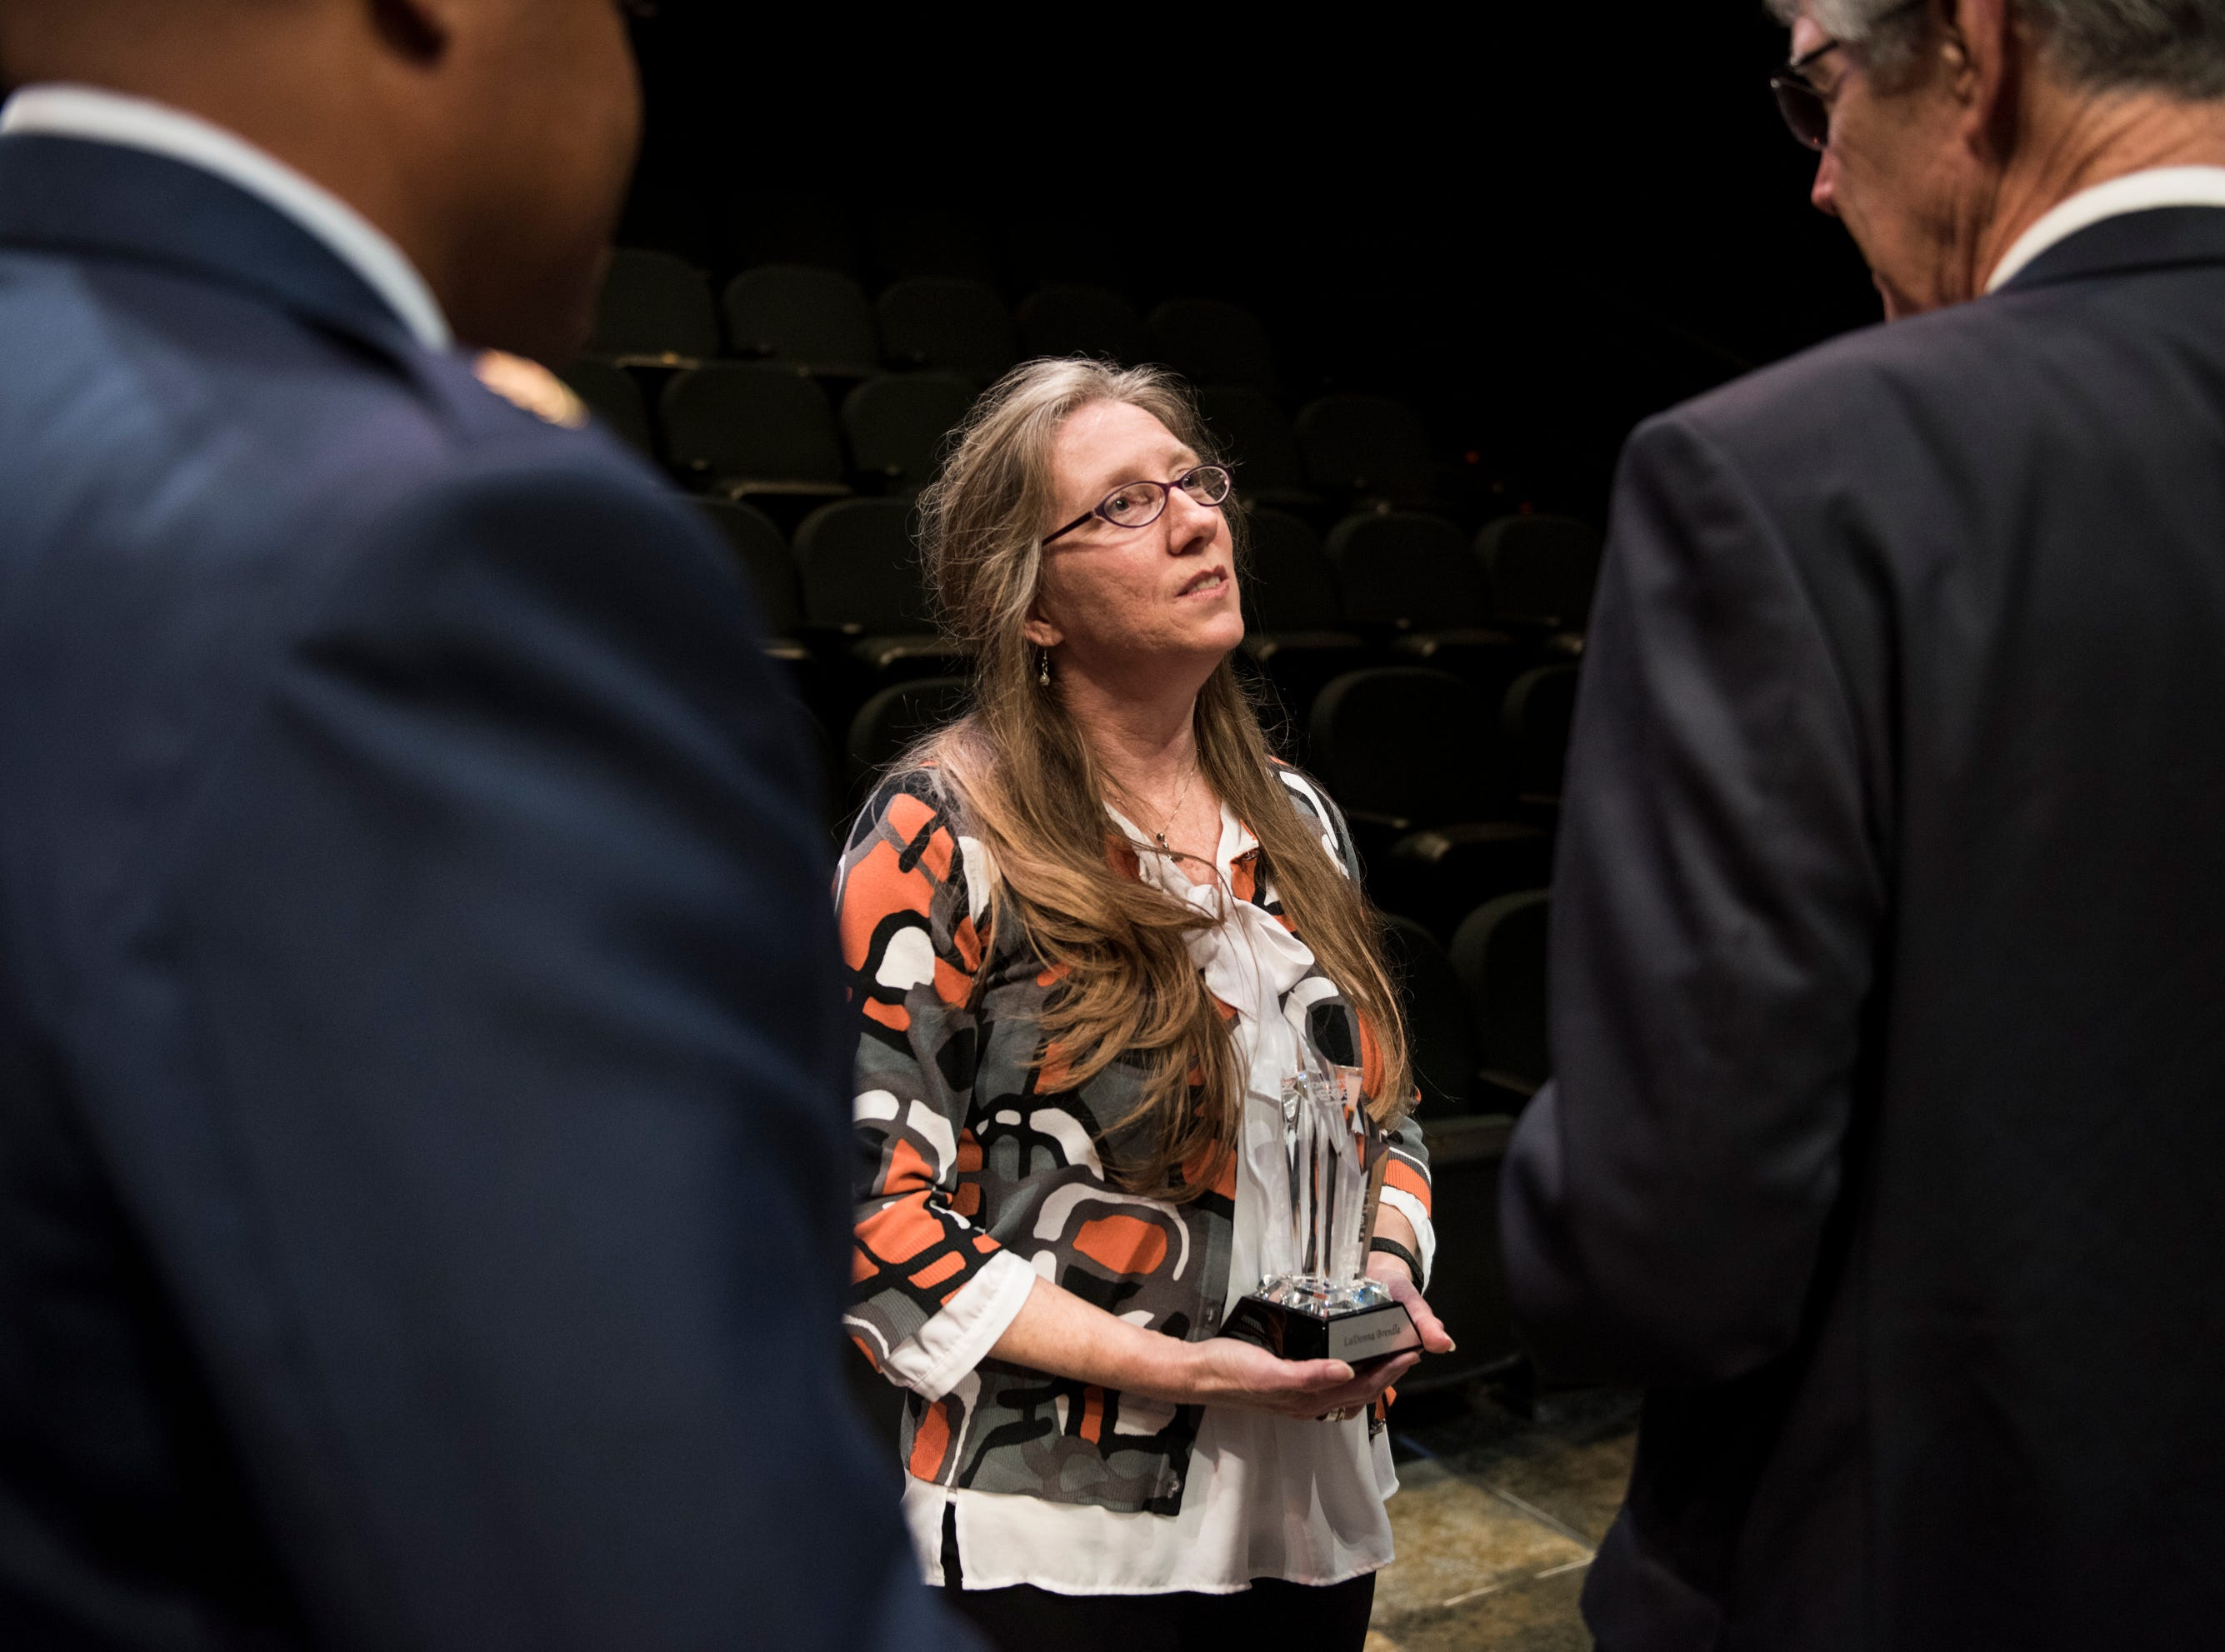 Community Hero of the year LaDonna Brendle speaks with other heroes during the Community Heroes awards ceremony at Alabama Shakespeare Festival in Montgomery, Ala., on Tuesday, Jan. 8, 2019.